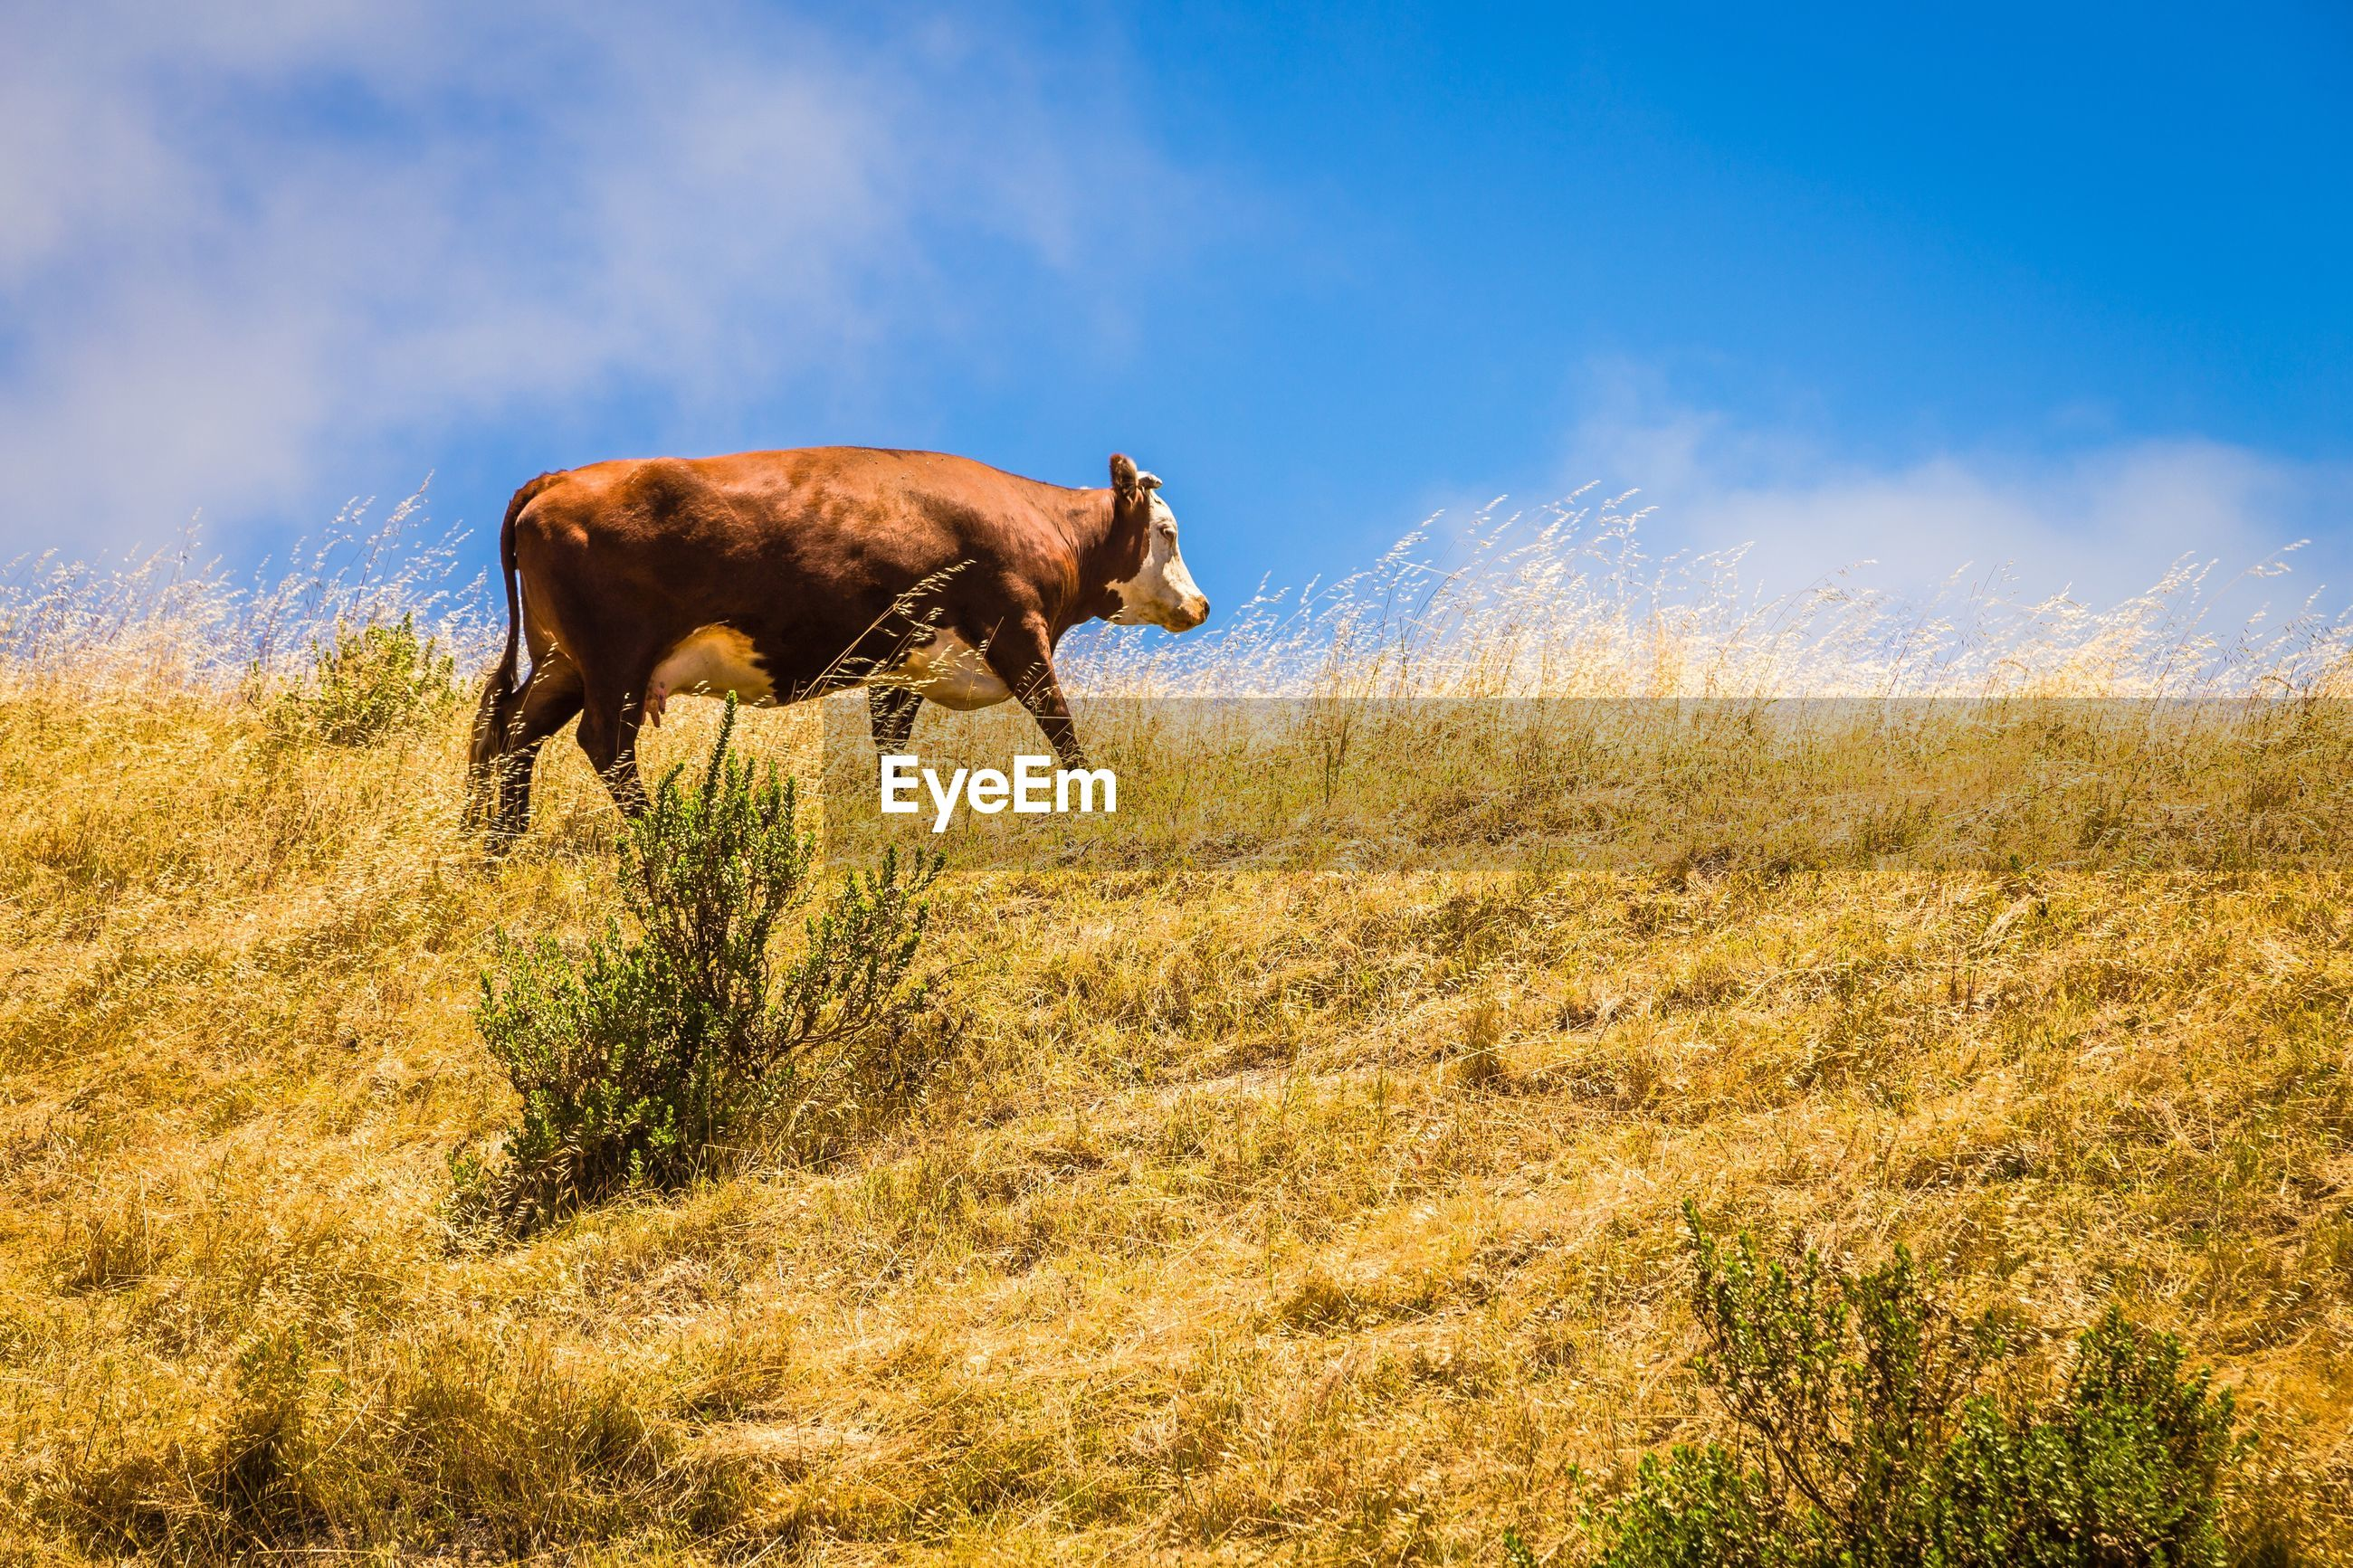 Low angle view of cow walking on grassy field against sky